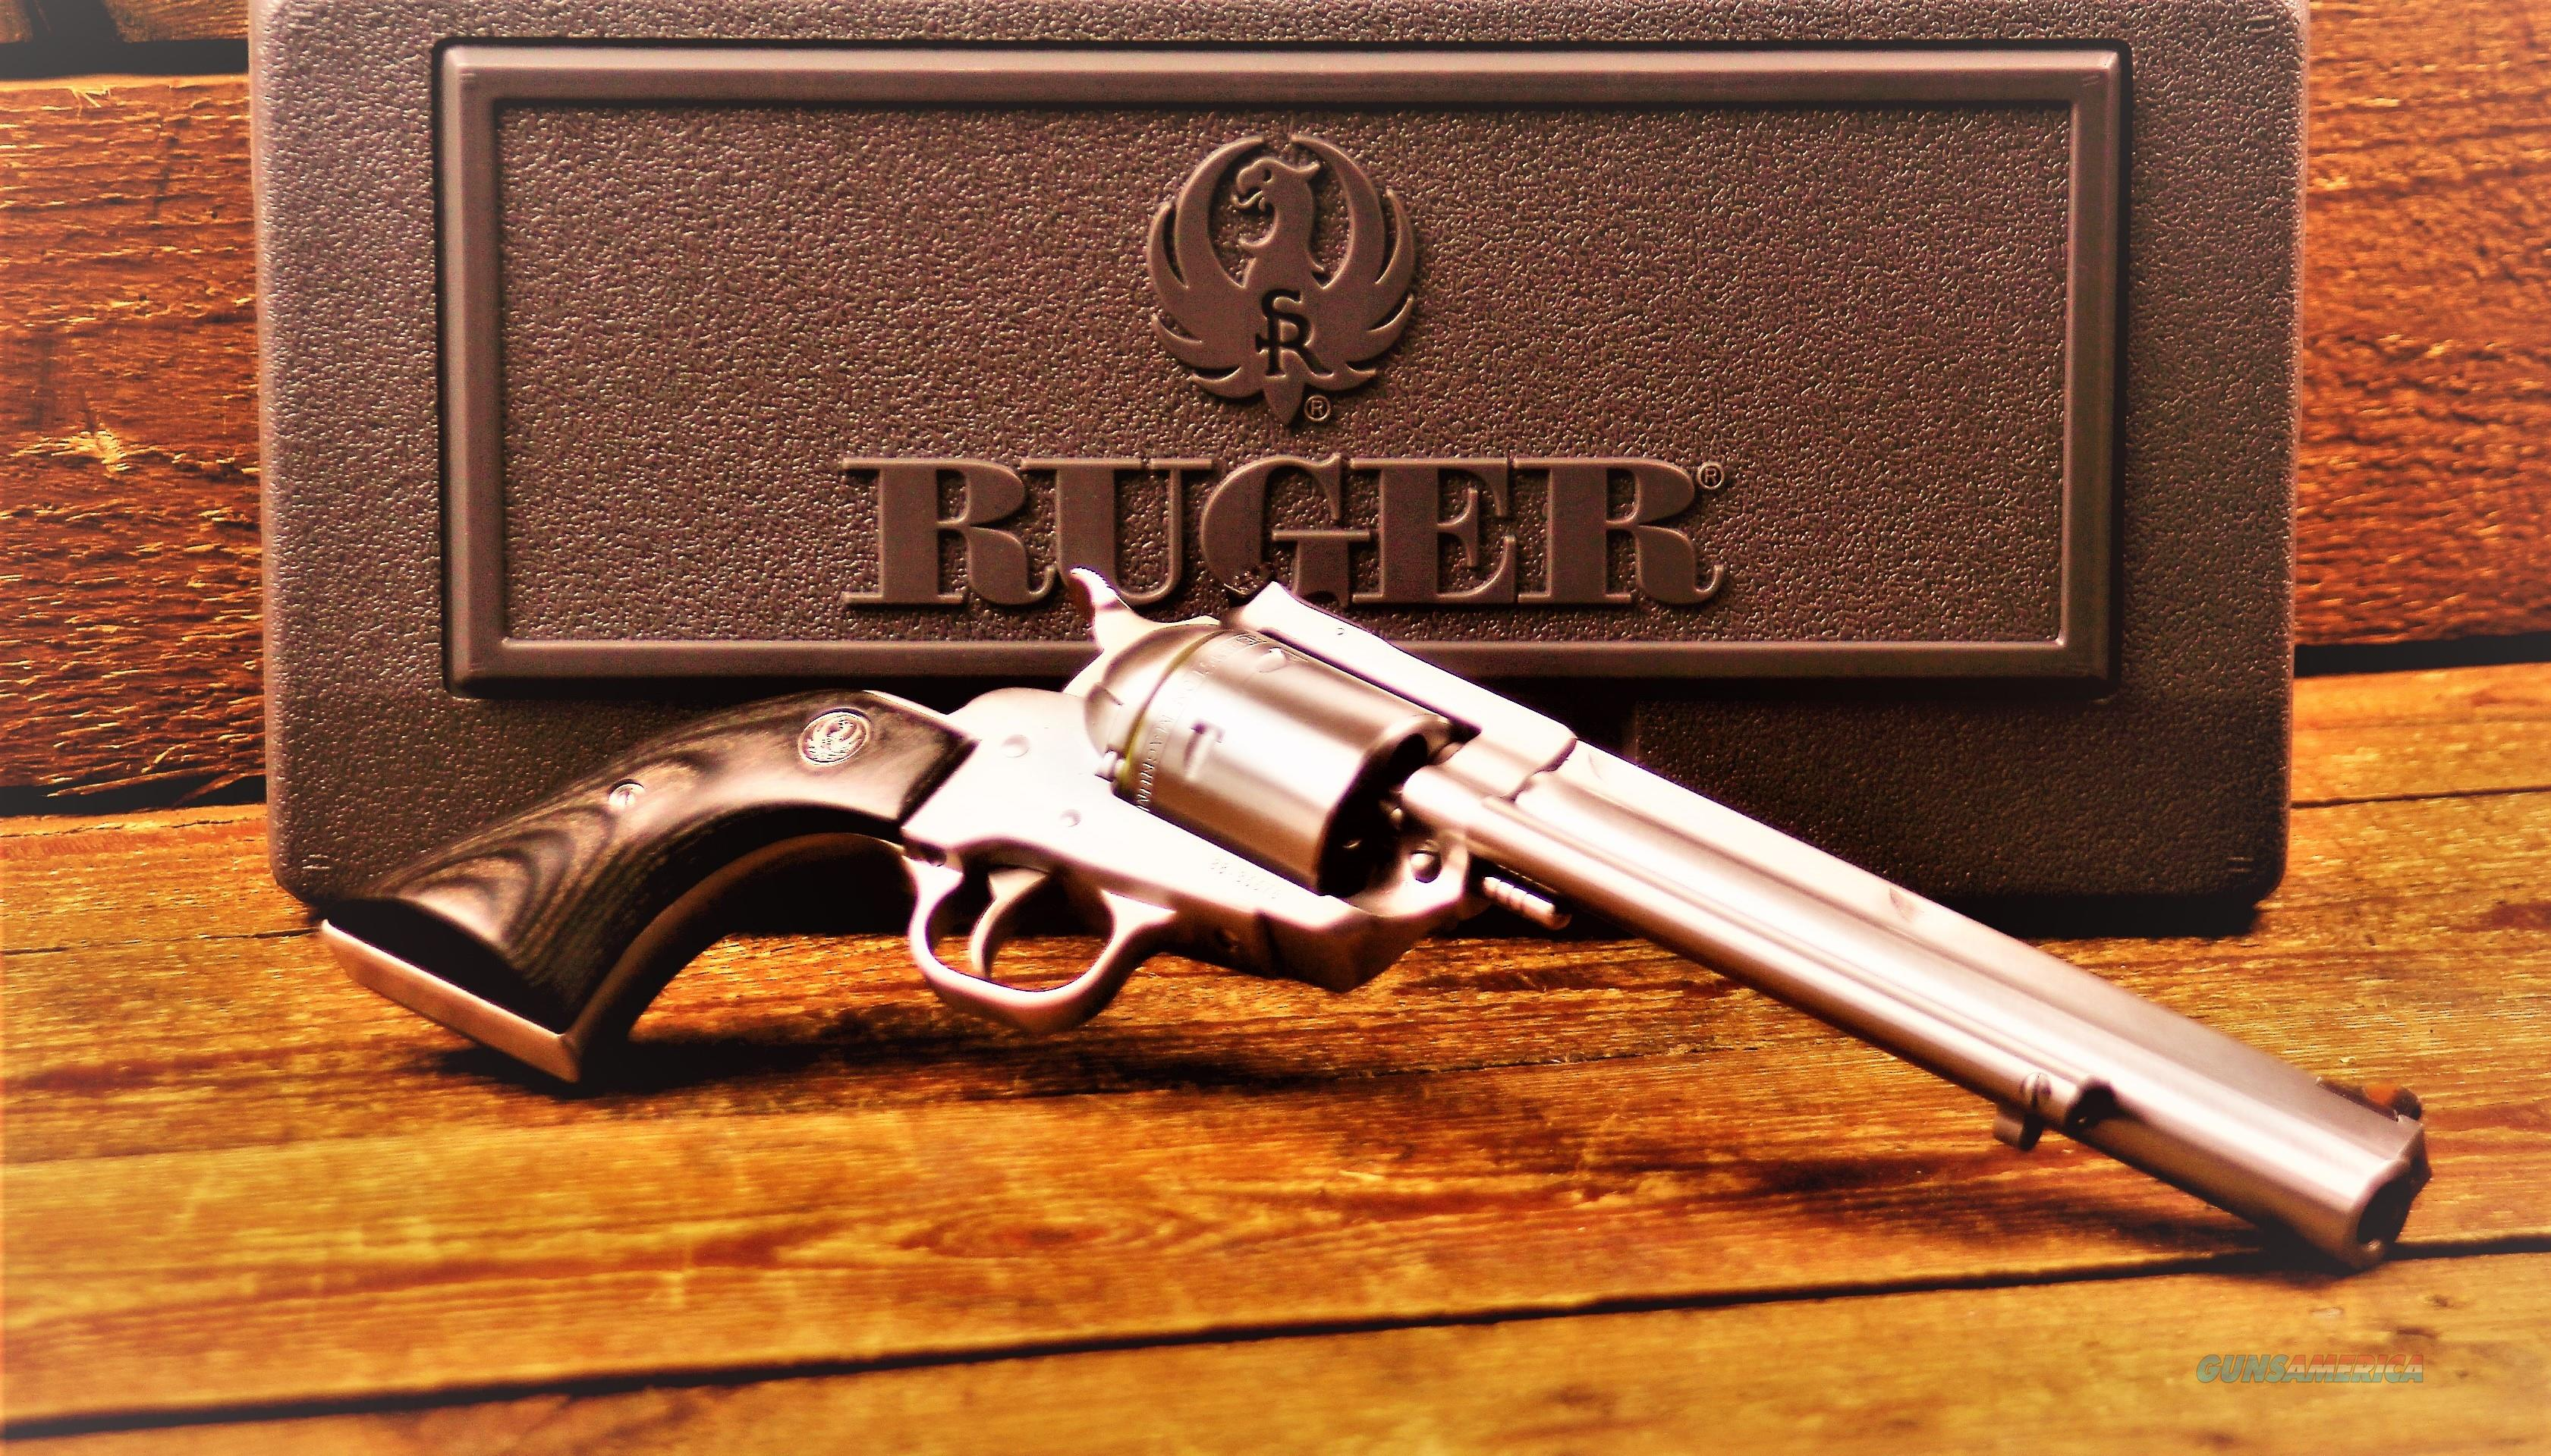 EASY PAY $71 DOWN LAYAWAY 12 MONTHLY PAYMENTS Ruger Super Blackhawk Hunter Exclusive Revolver .41 Mag  KS-417NH Stainless Steel   Guns > Pistols > Ruger Single Action Revolvers > Blackhawk Type